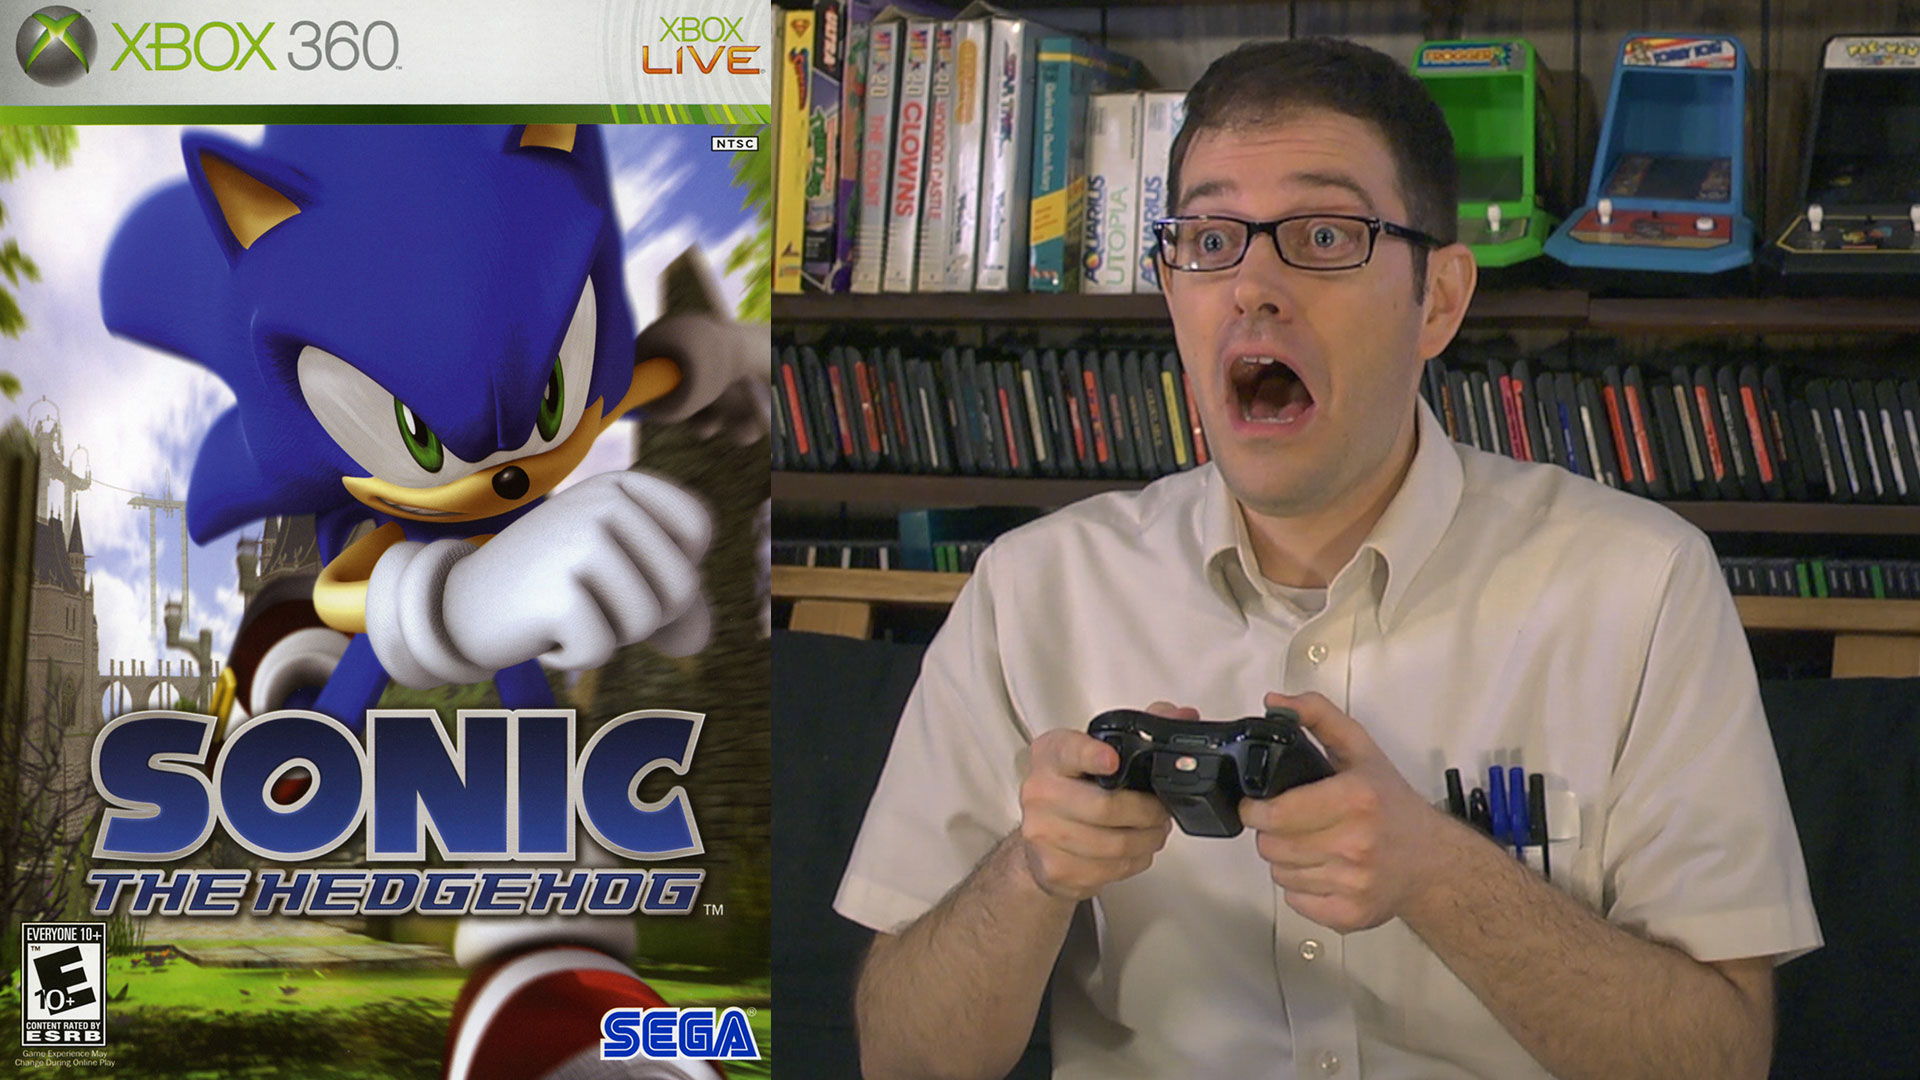 Angry Video Game Nerd Fulfills Demand For Angry Sonic 06 Review